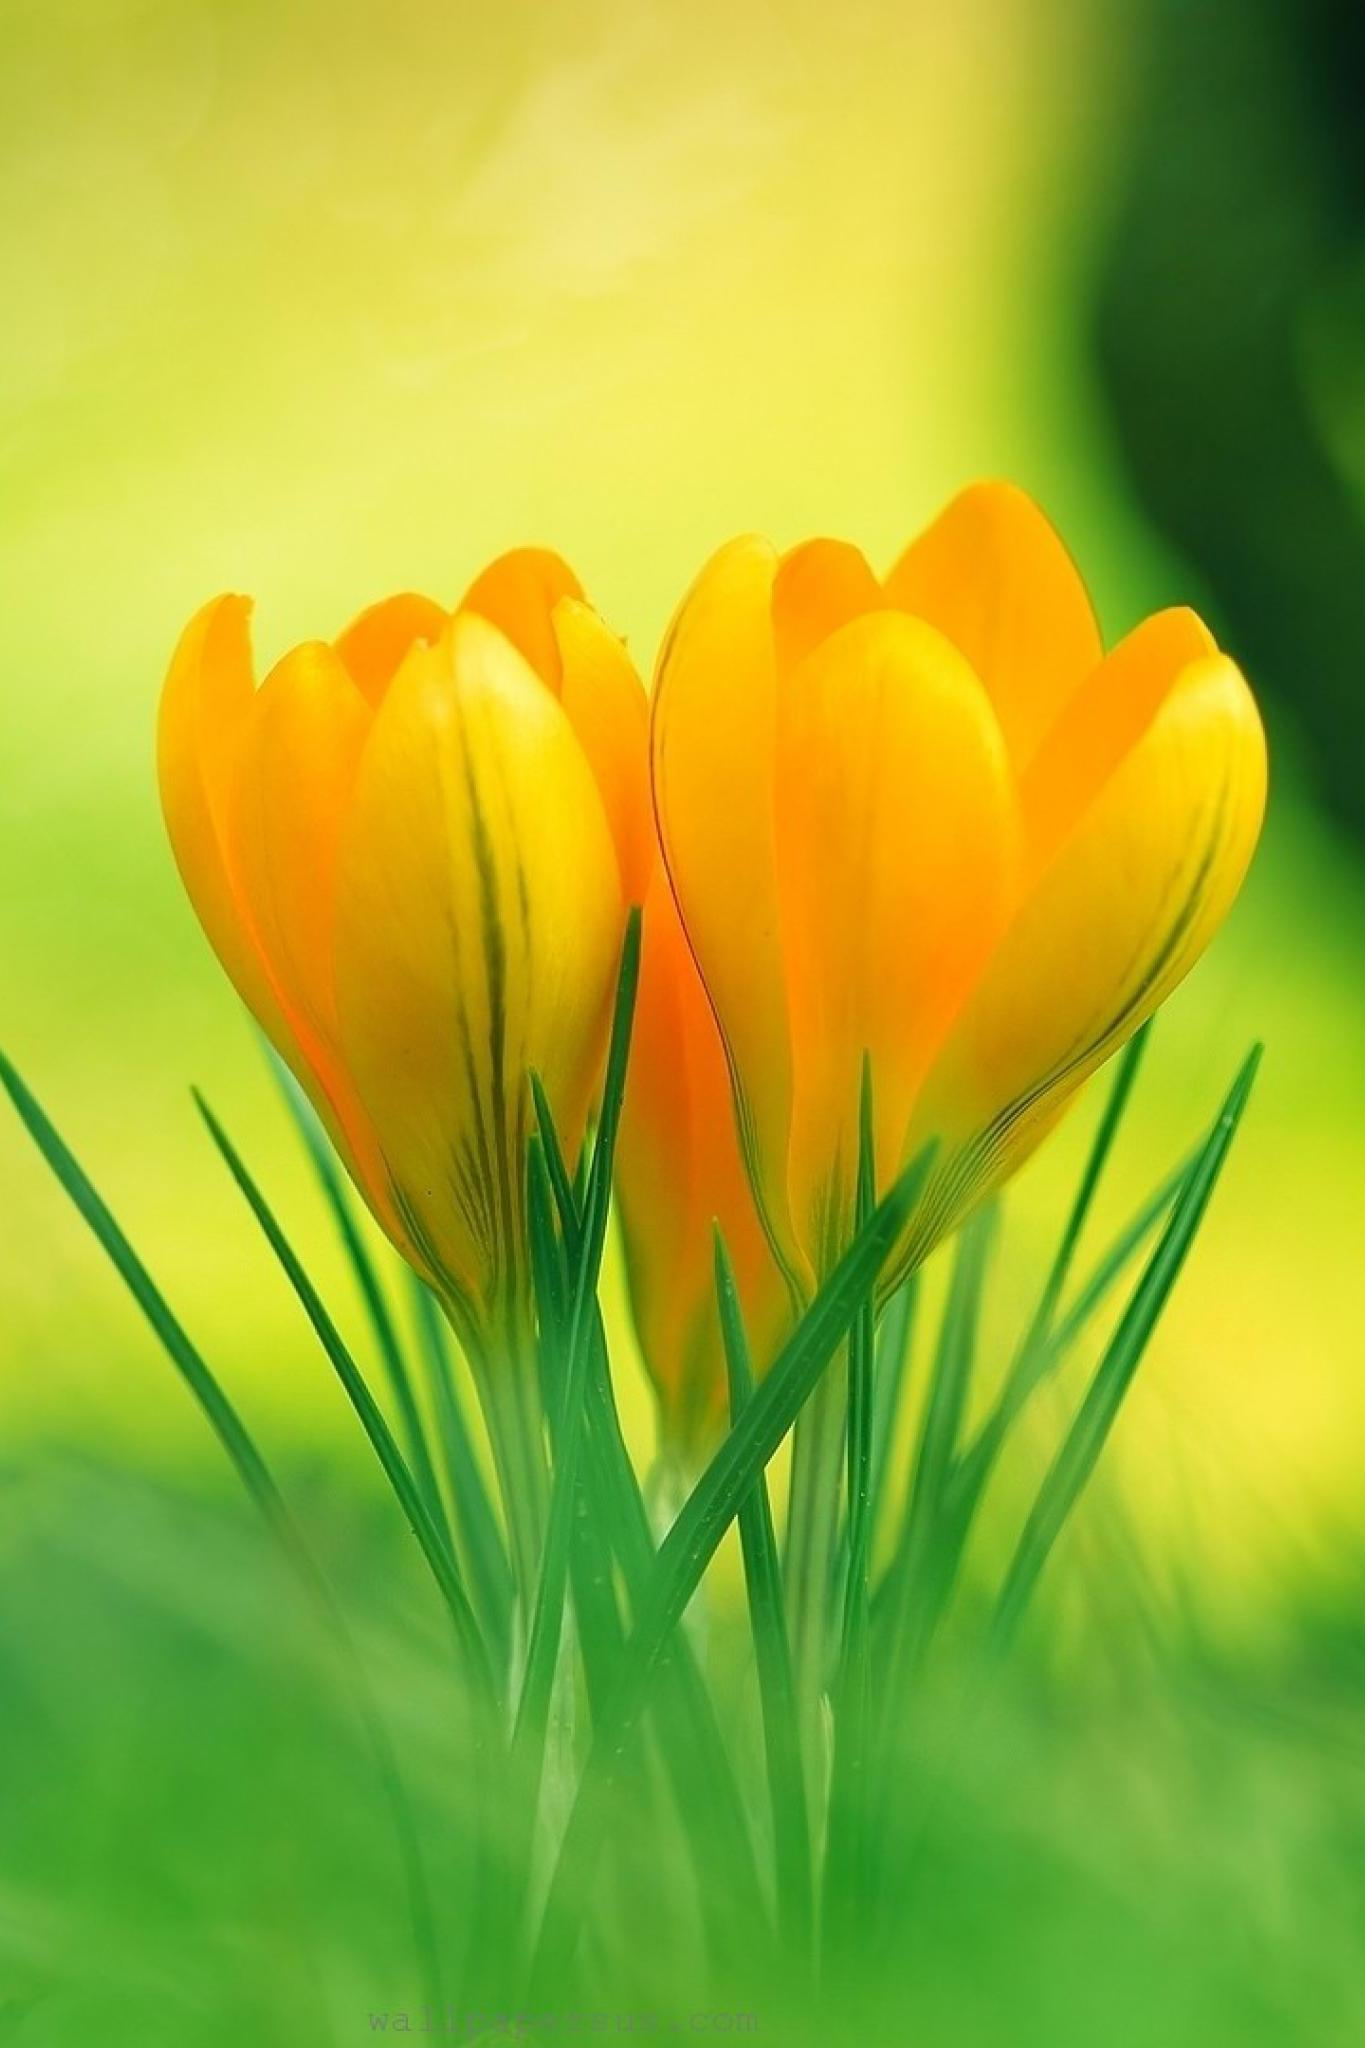 HD Wallpaper Yellow Flower